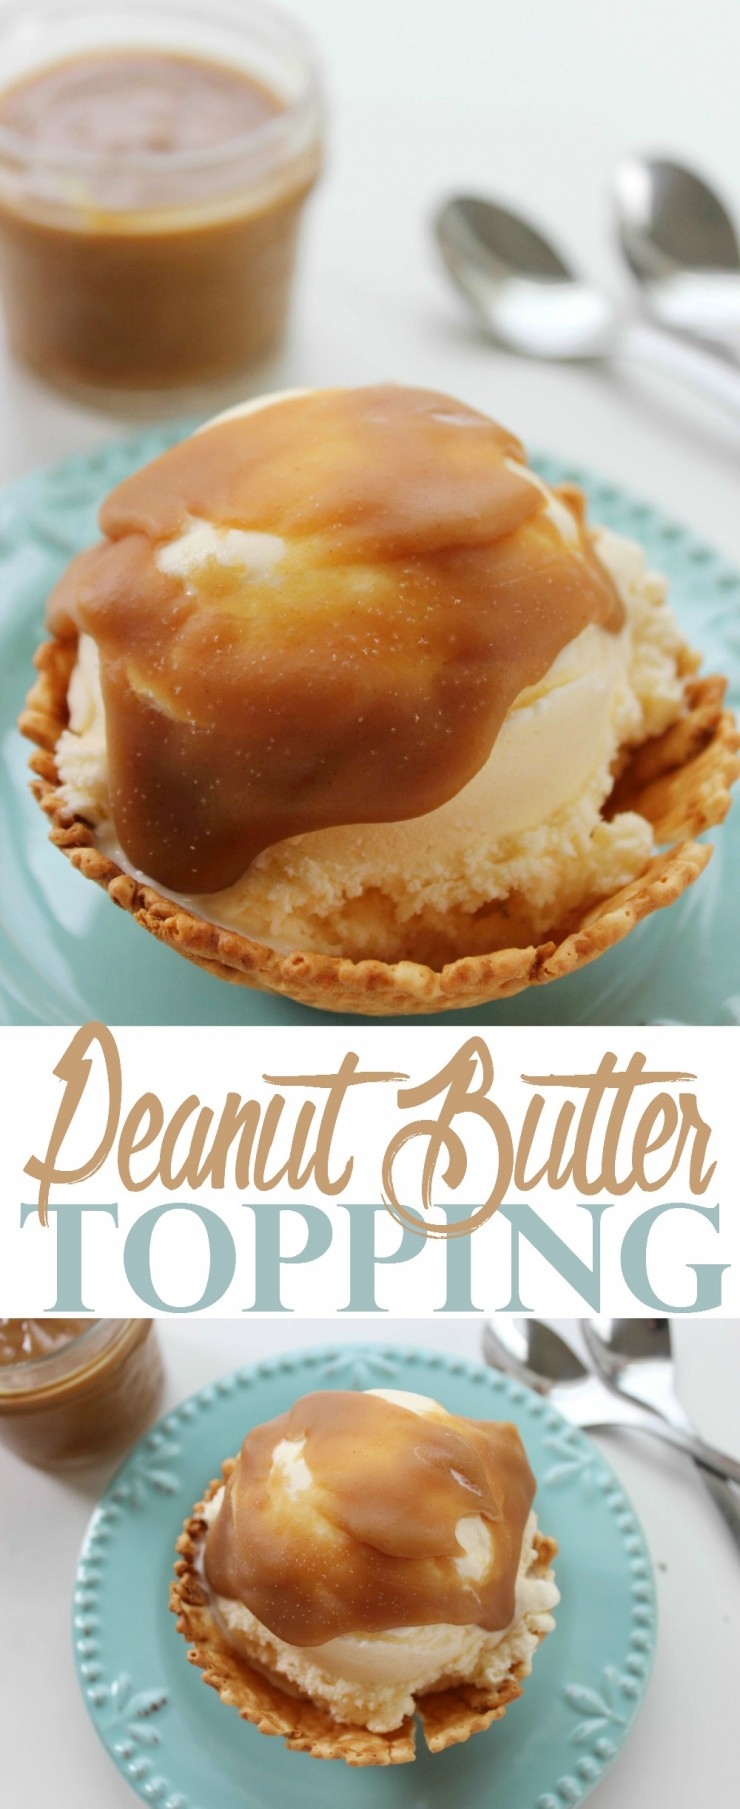 This Peanut Butter Topping is perfect for topping ice cream whether you opt for vanilla ice cream or a more adventurous ice cream flavour!